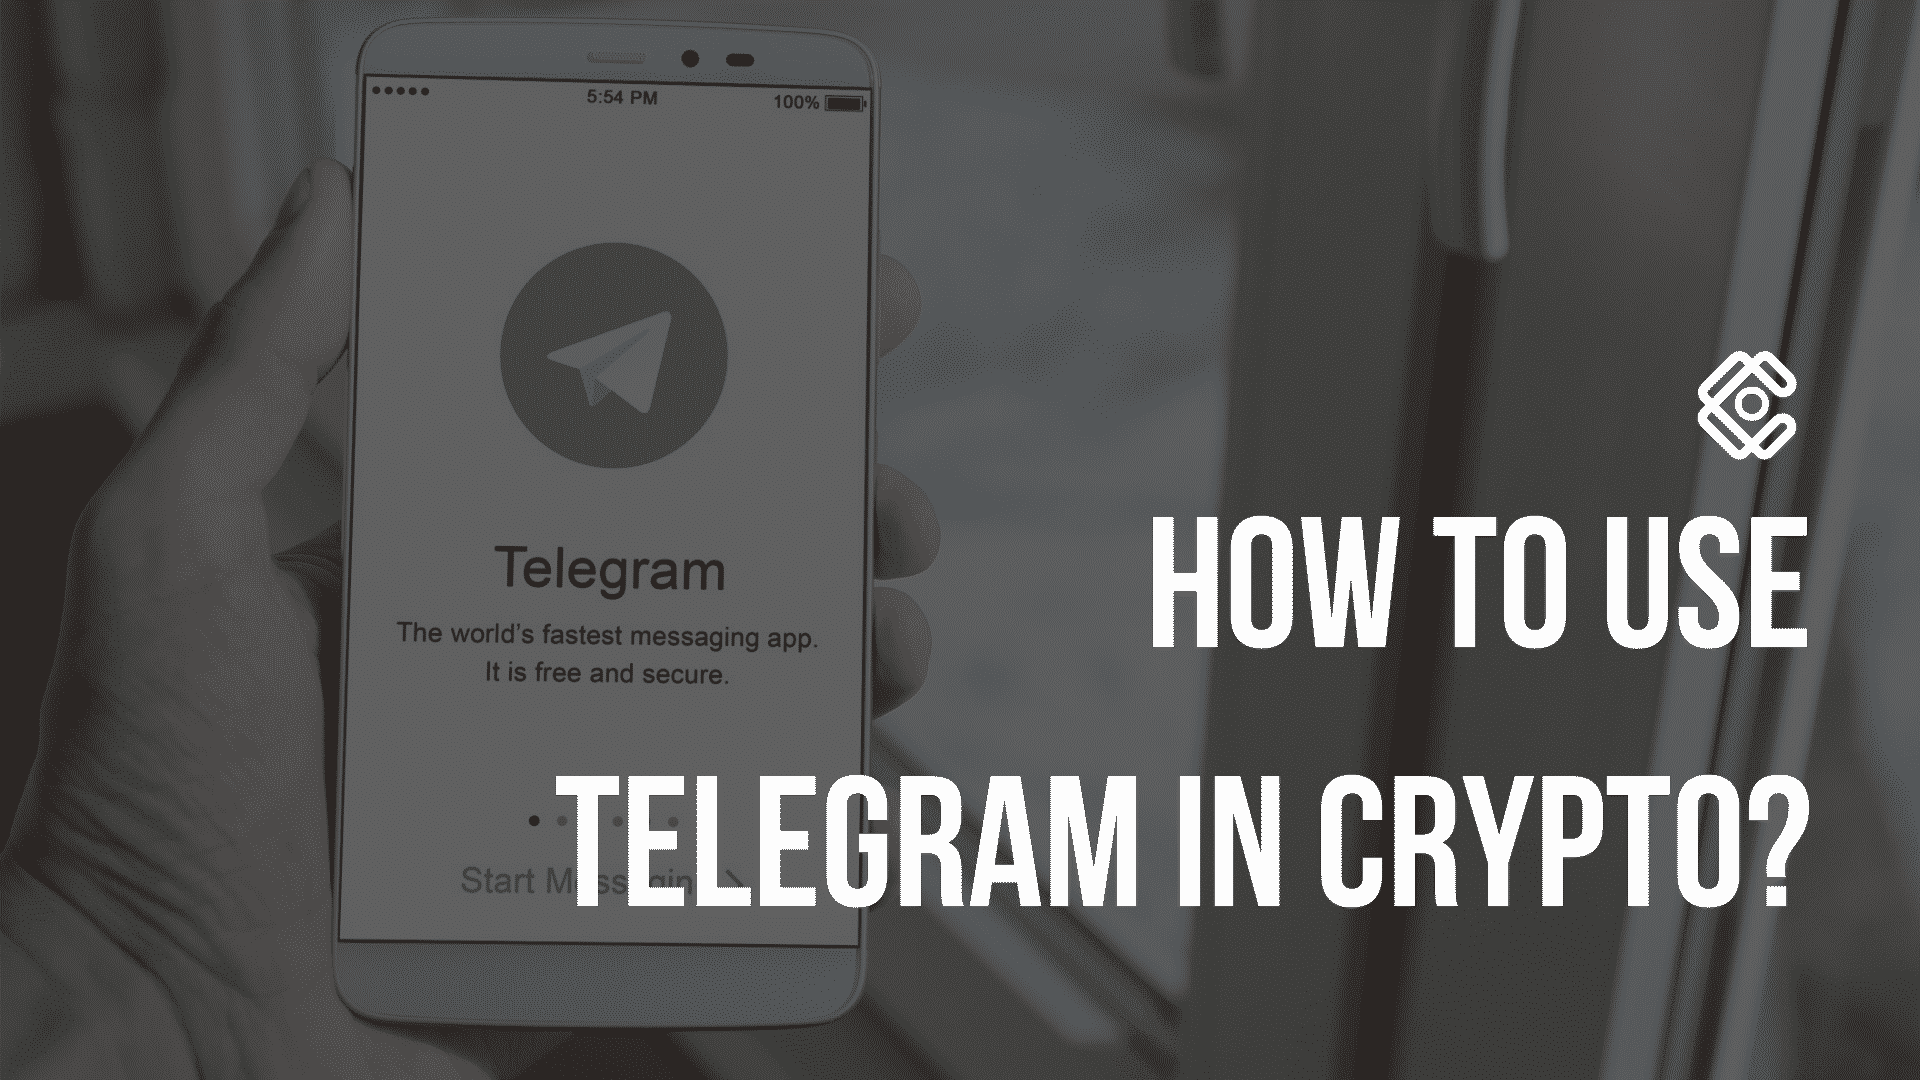 How to use Telegram in crypto?